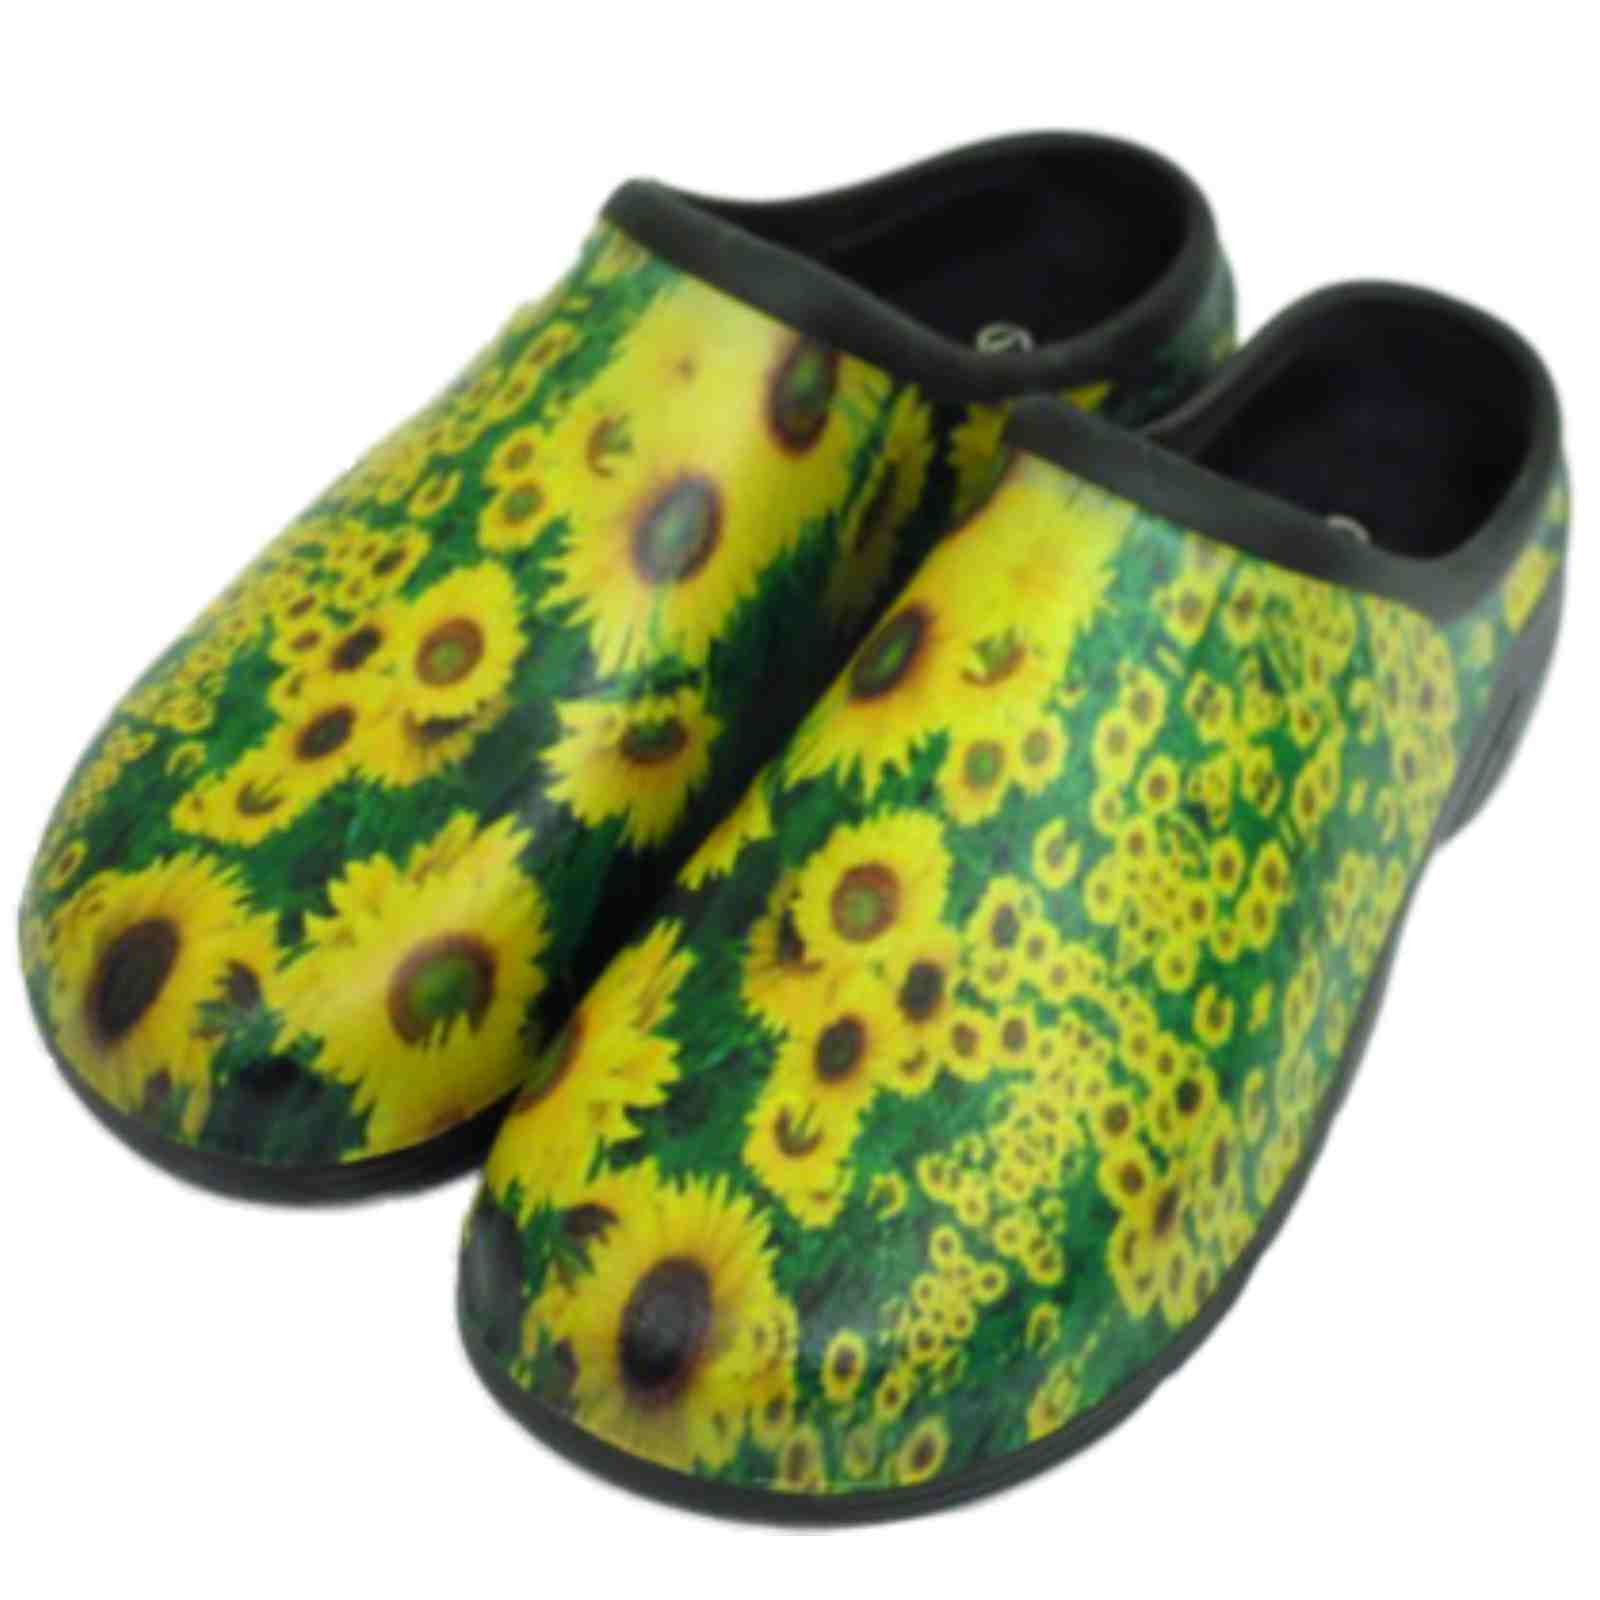 thumbnail 18 - LADIES-GARDENING-CLOGS-LIGHTWEIGHT-SLIP-ON-GARDEN-MULES-OUTDOOR-SHOES-UK-4-8